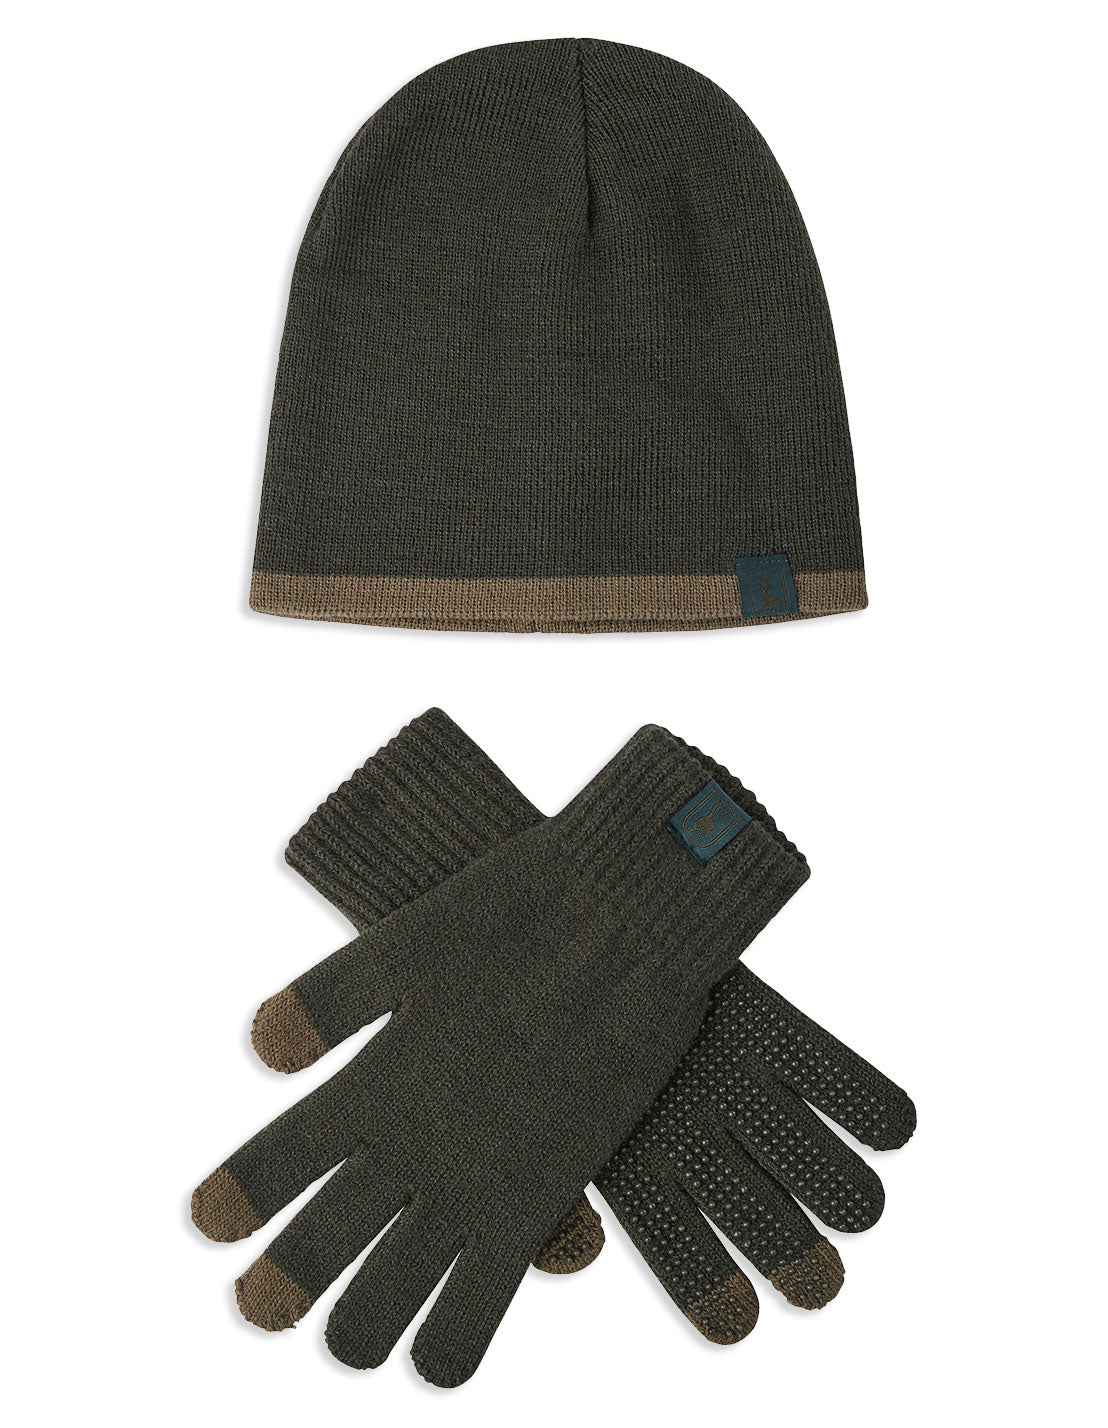 Deerhunter Anti-Slip Mobile-touch Gloves and Winter Hat